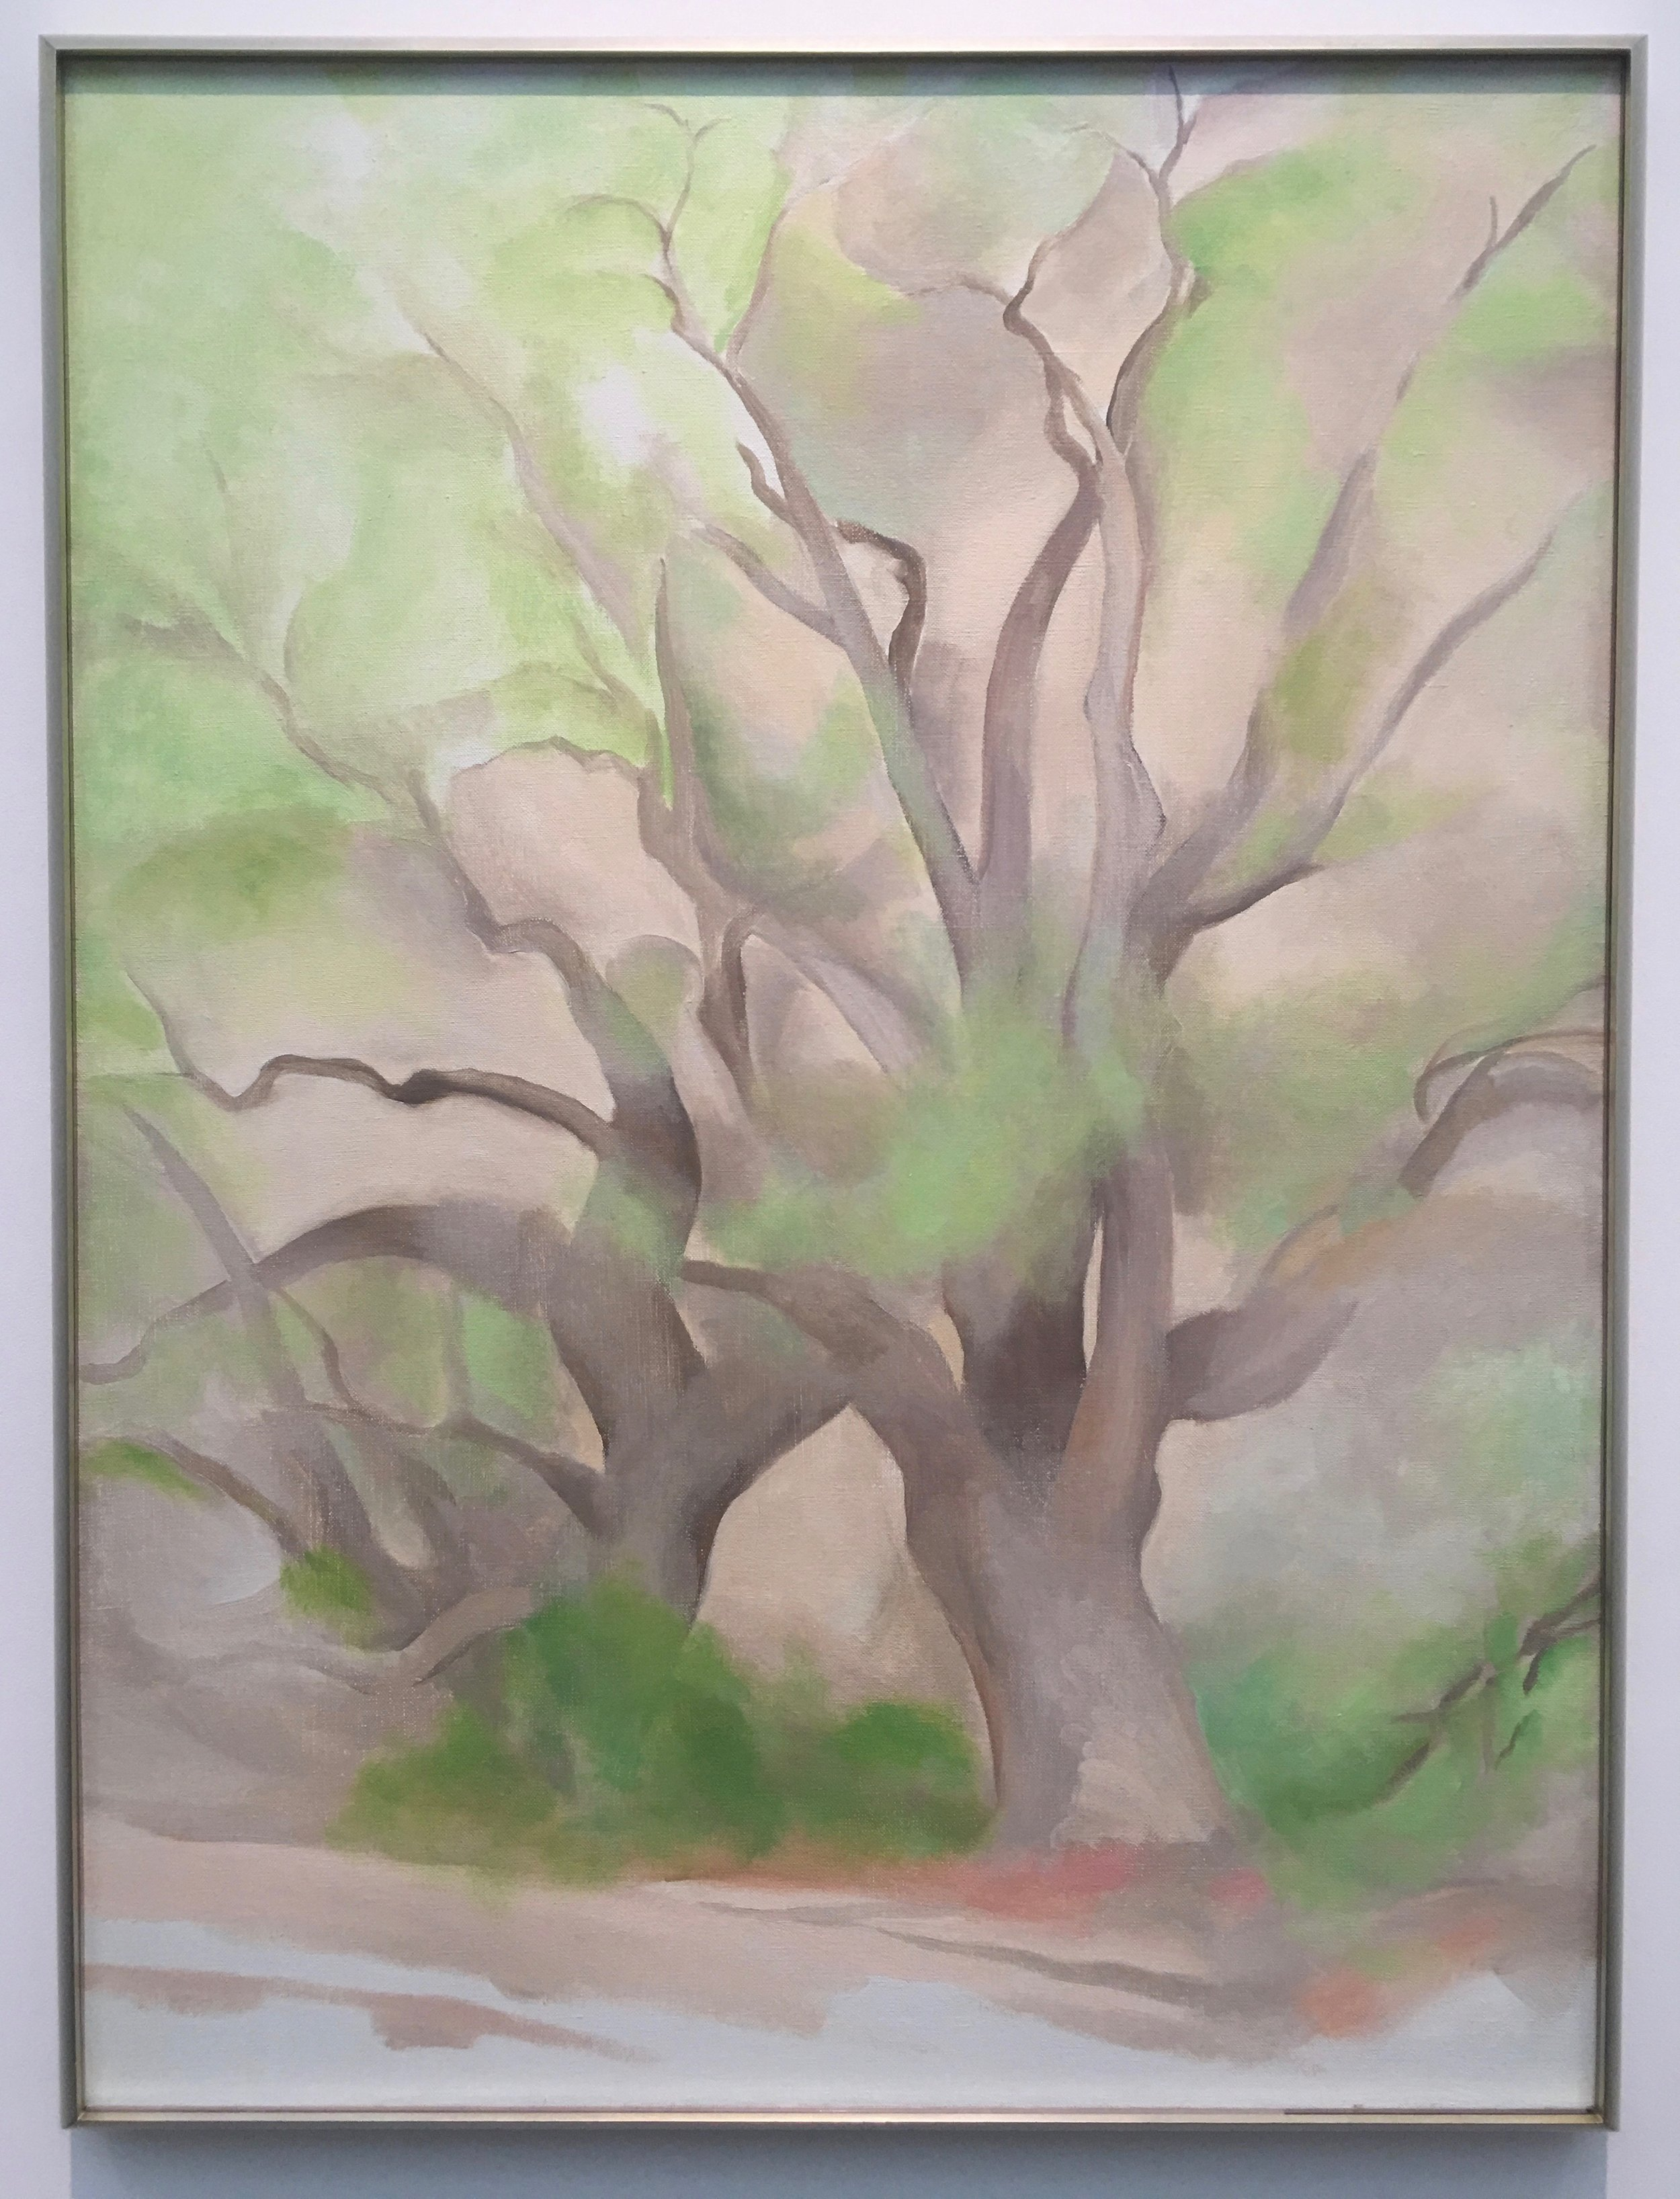 Georgia O'Keefe, Green Tree, 1953, Oil on Canvas